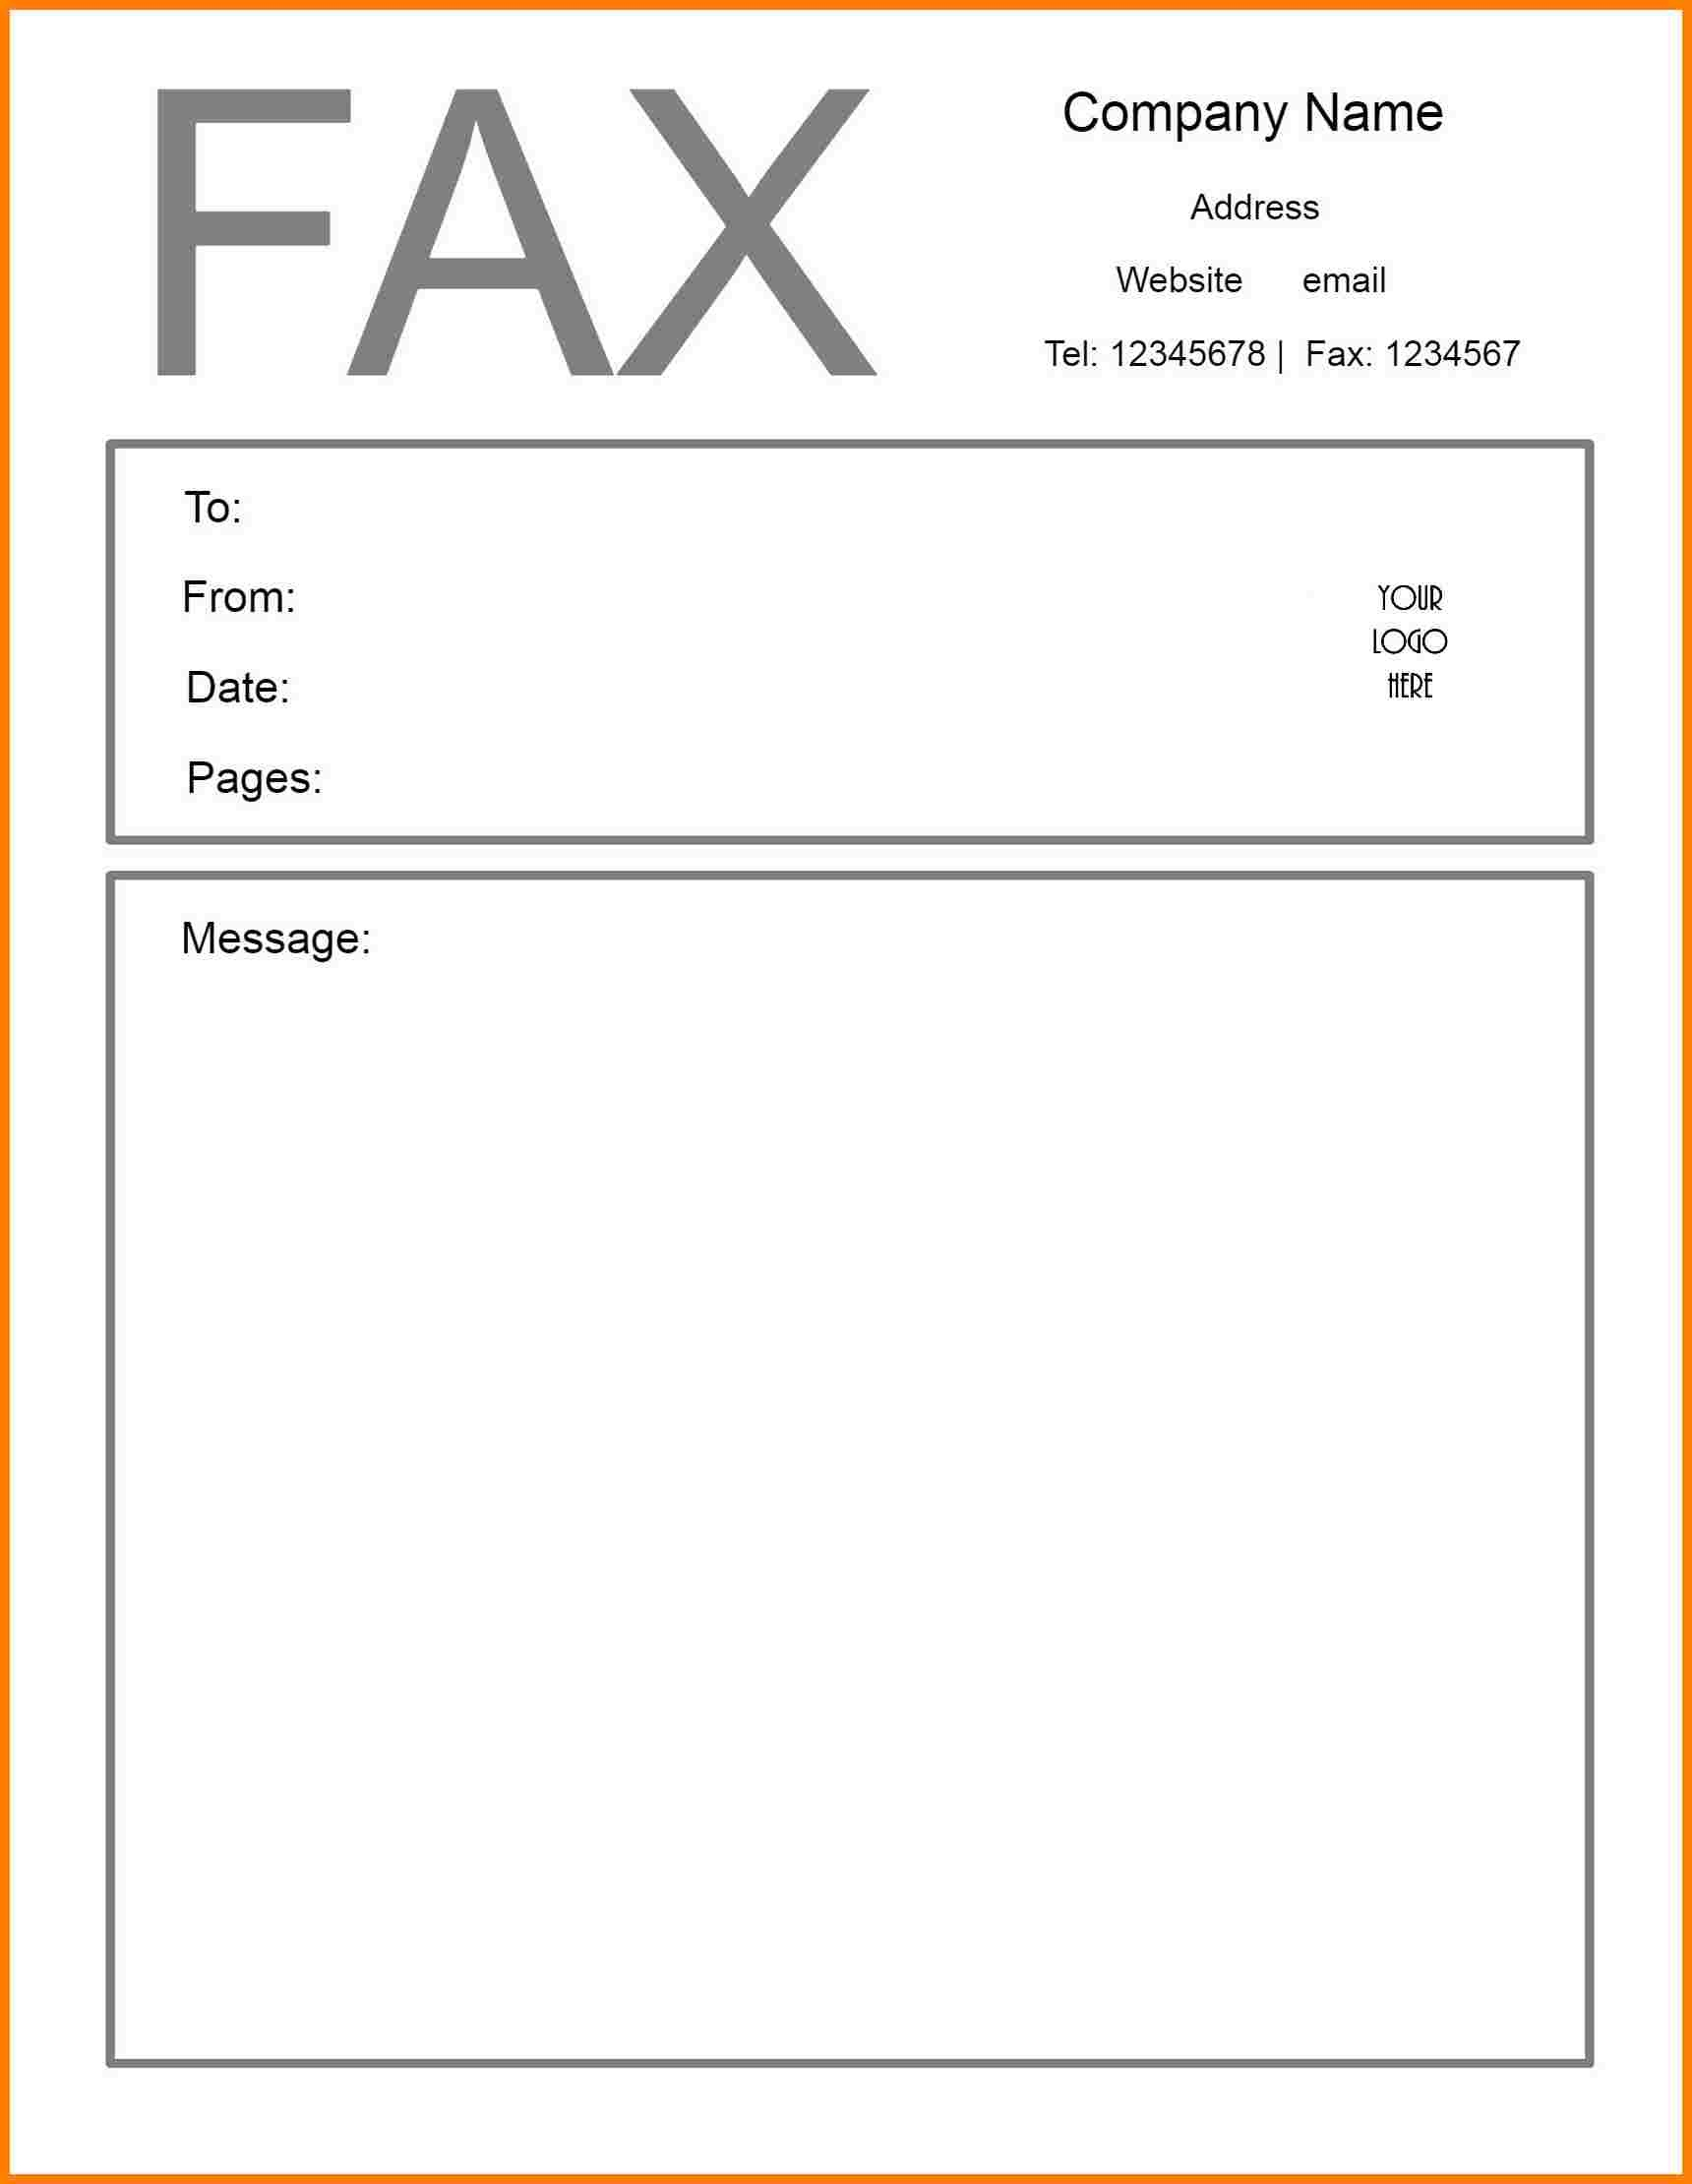 Free Printable Fax Cover Sheet | Printable Fax Cover Sheet - Free Printable Fax Cover Sheet